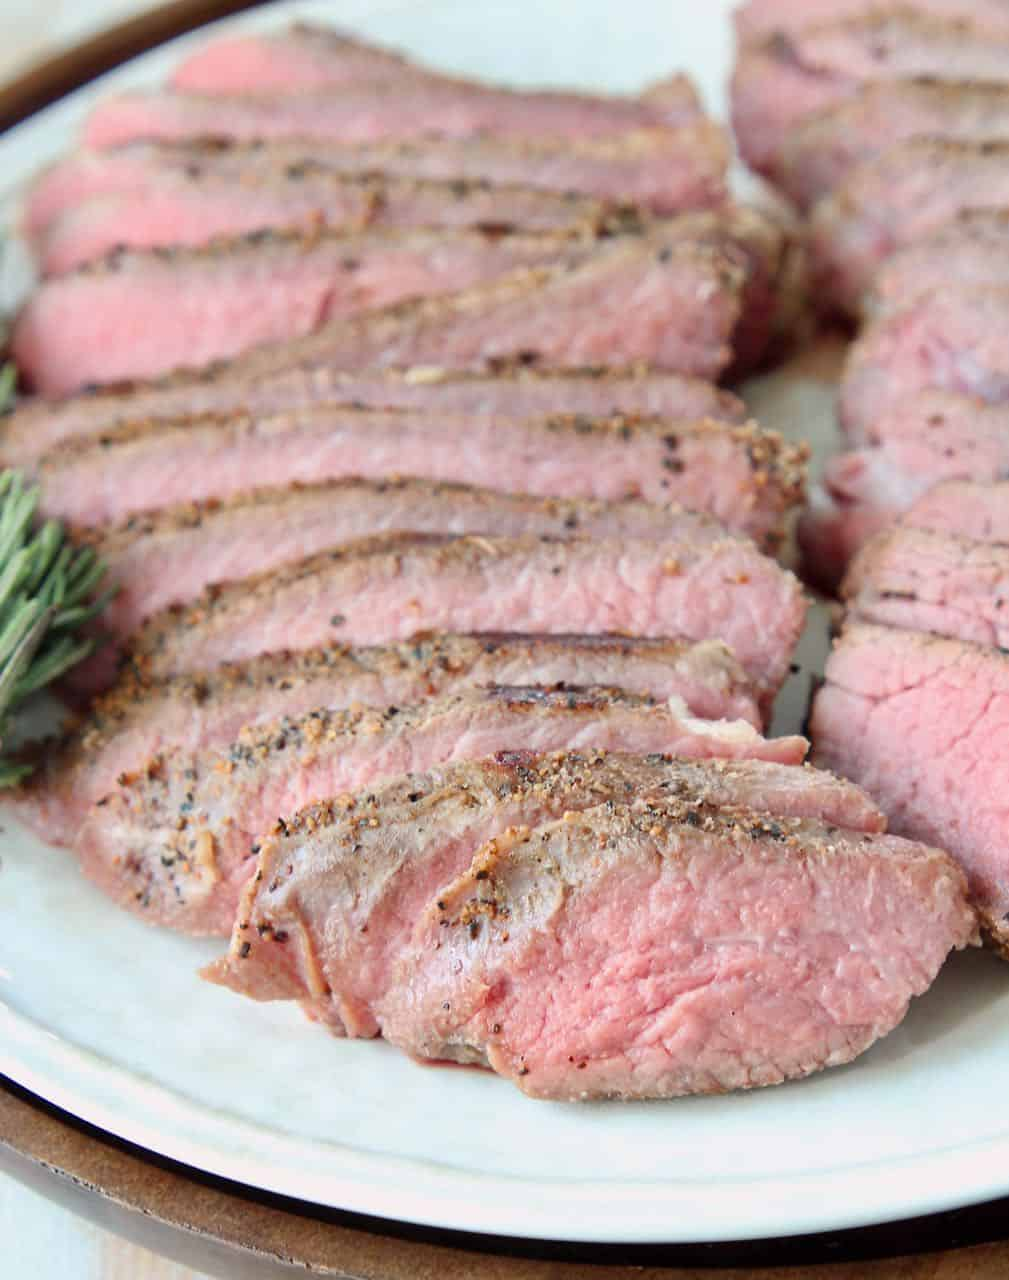 Sliced sous vide tri tip steak on plate